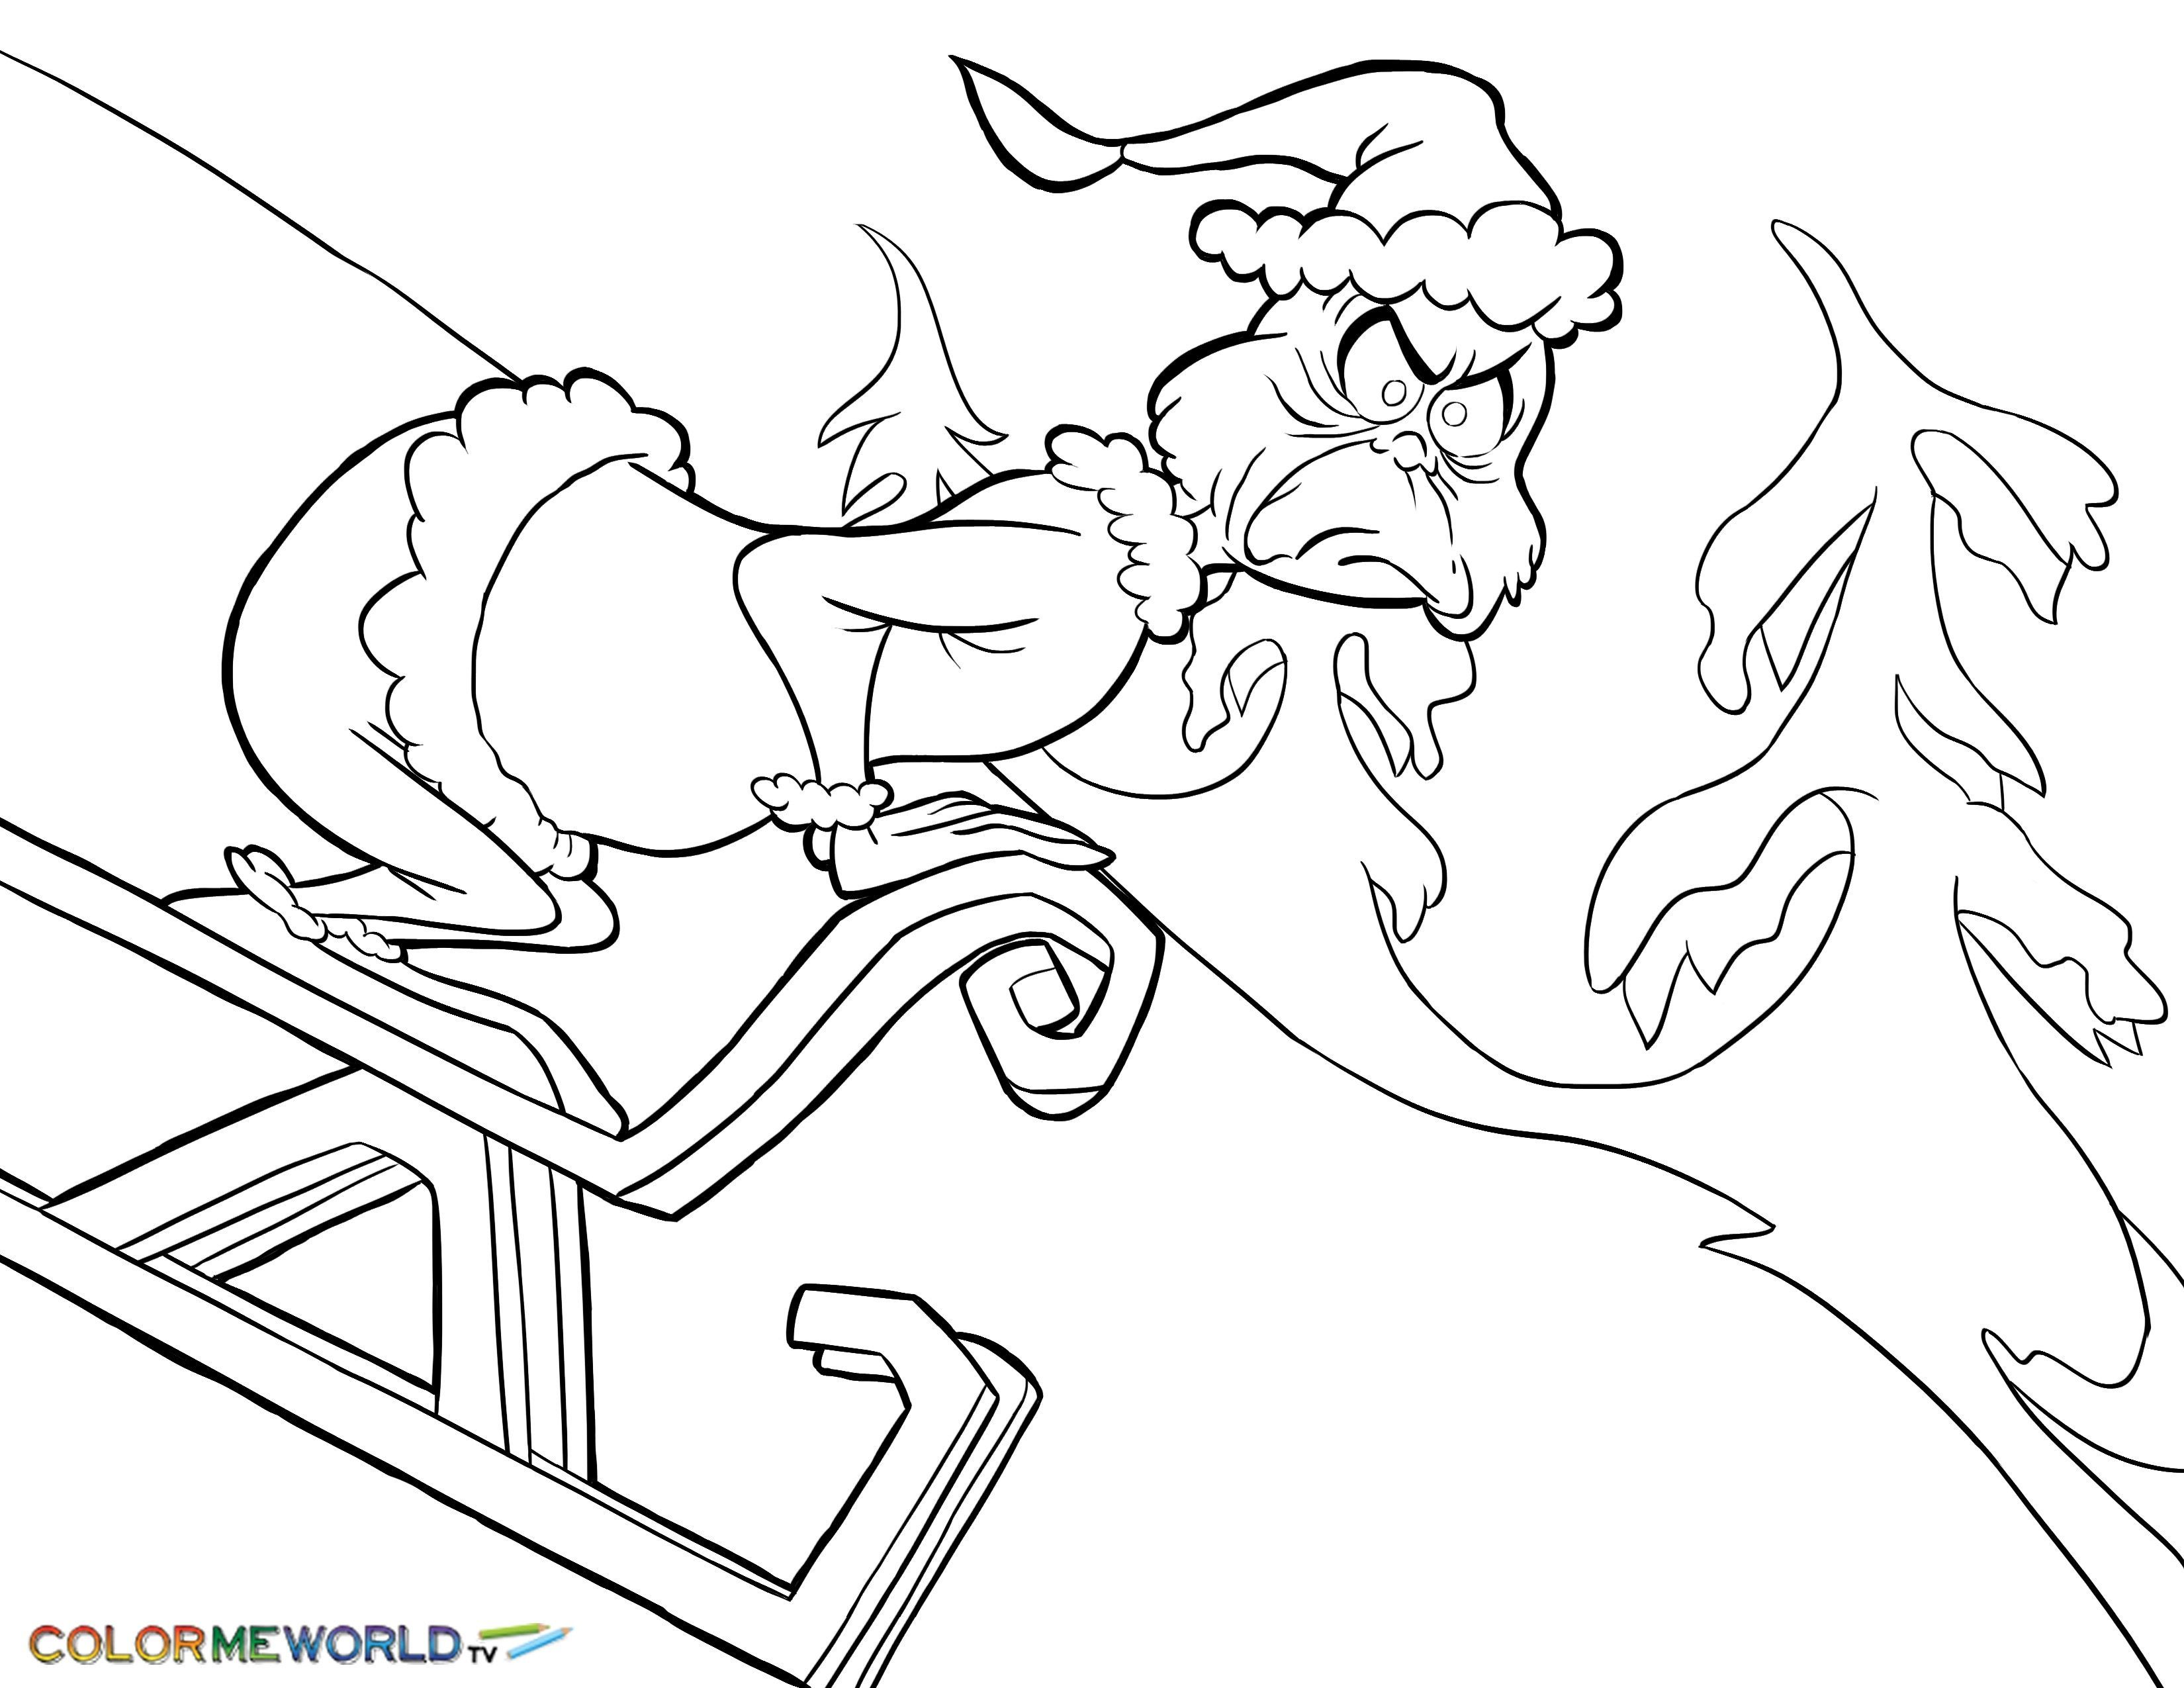 Grinch Coloring Pages The Grinch Coloring Pages Free Printable The Grinch Pdf Coloring Grinch Grinch Coloring Pages Printable Christmas Coloring Pages